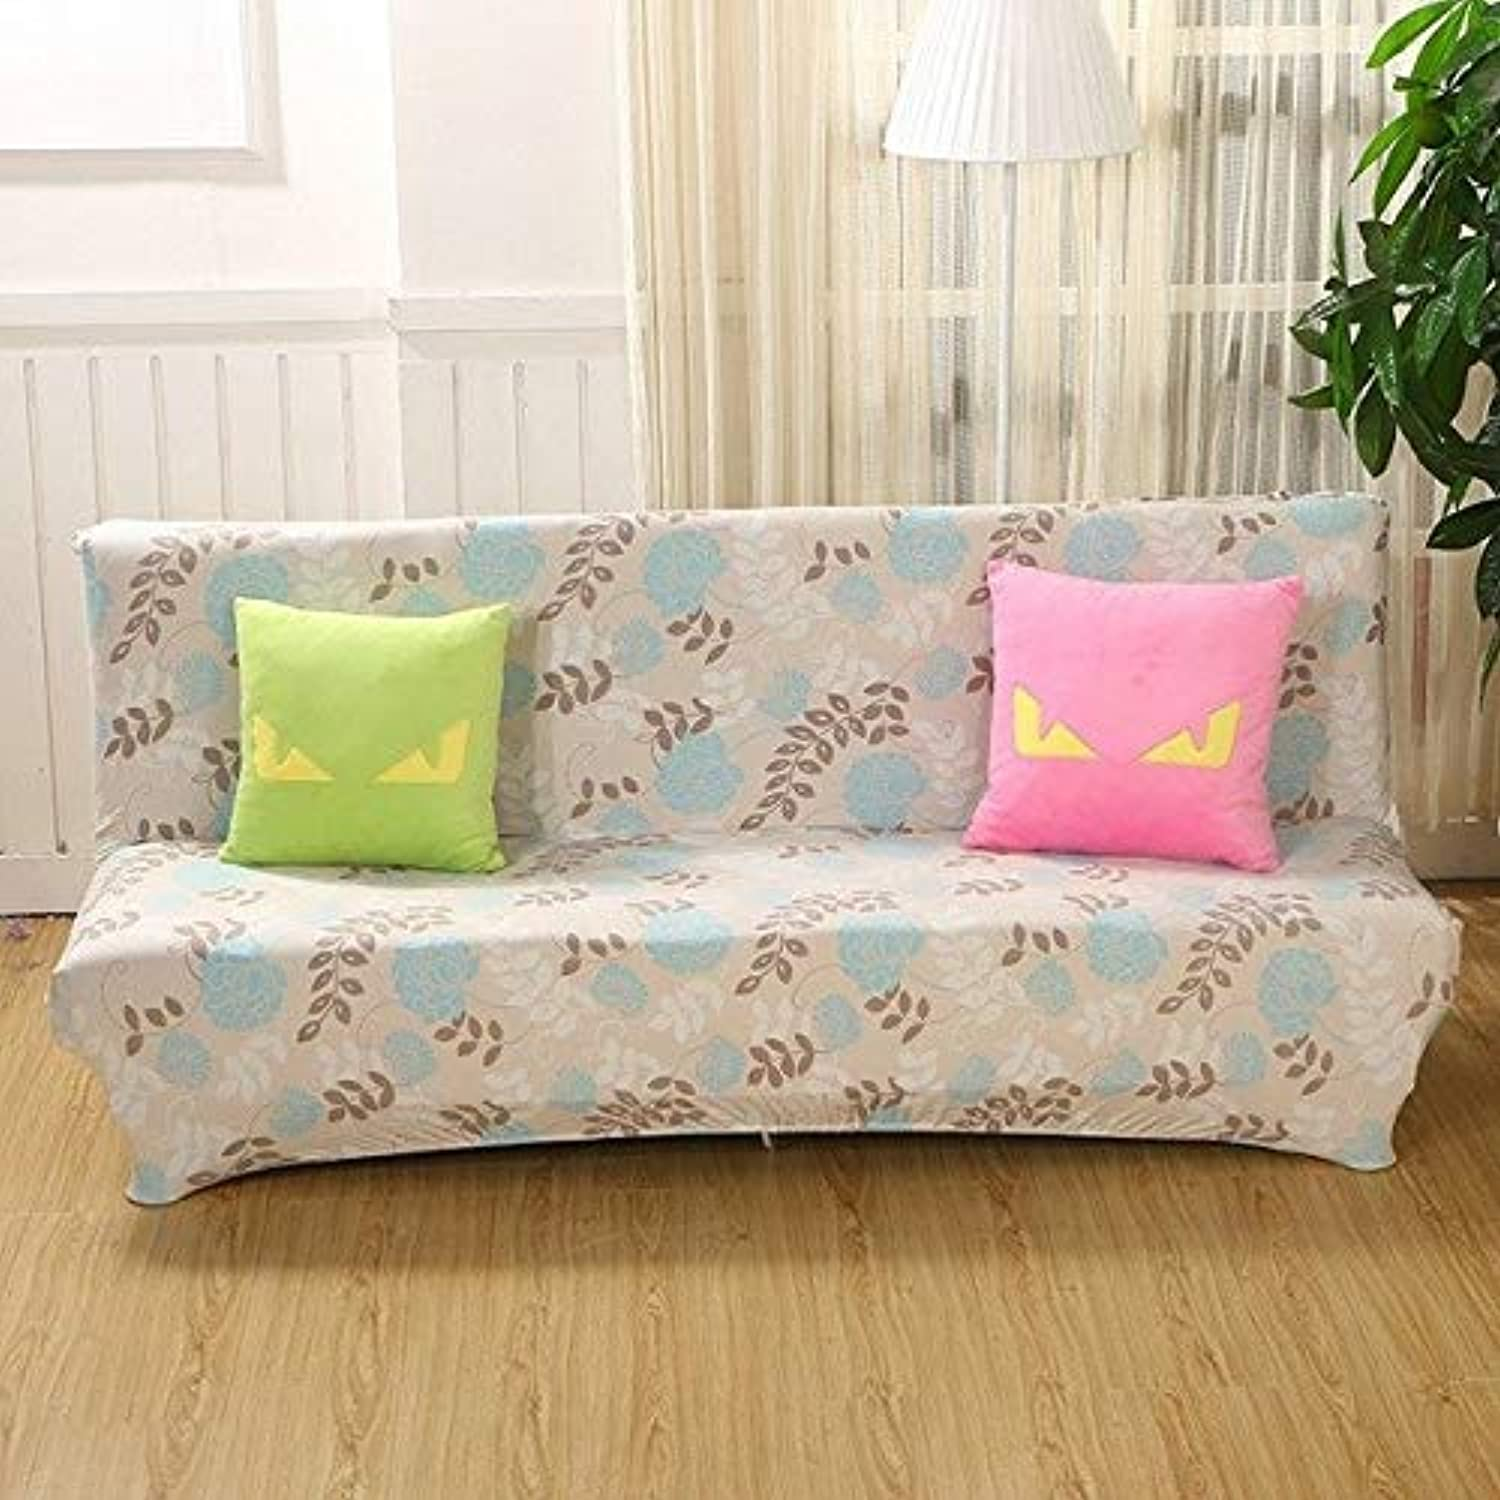 Farmerly Sofa Cover Elastic Sofa Bed Cover All-Inclusive Slipcover for Sofa Without Armrest No Handrail Cover Size 160-210cm   07, 160 to 195cm